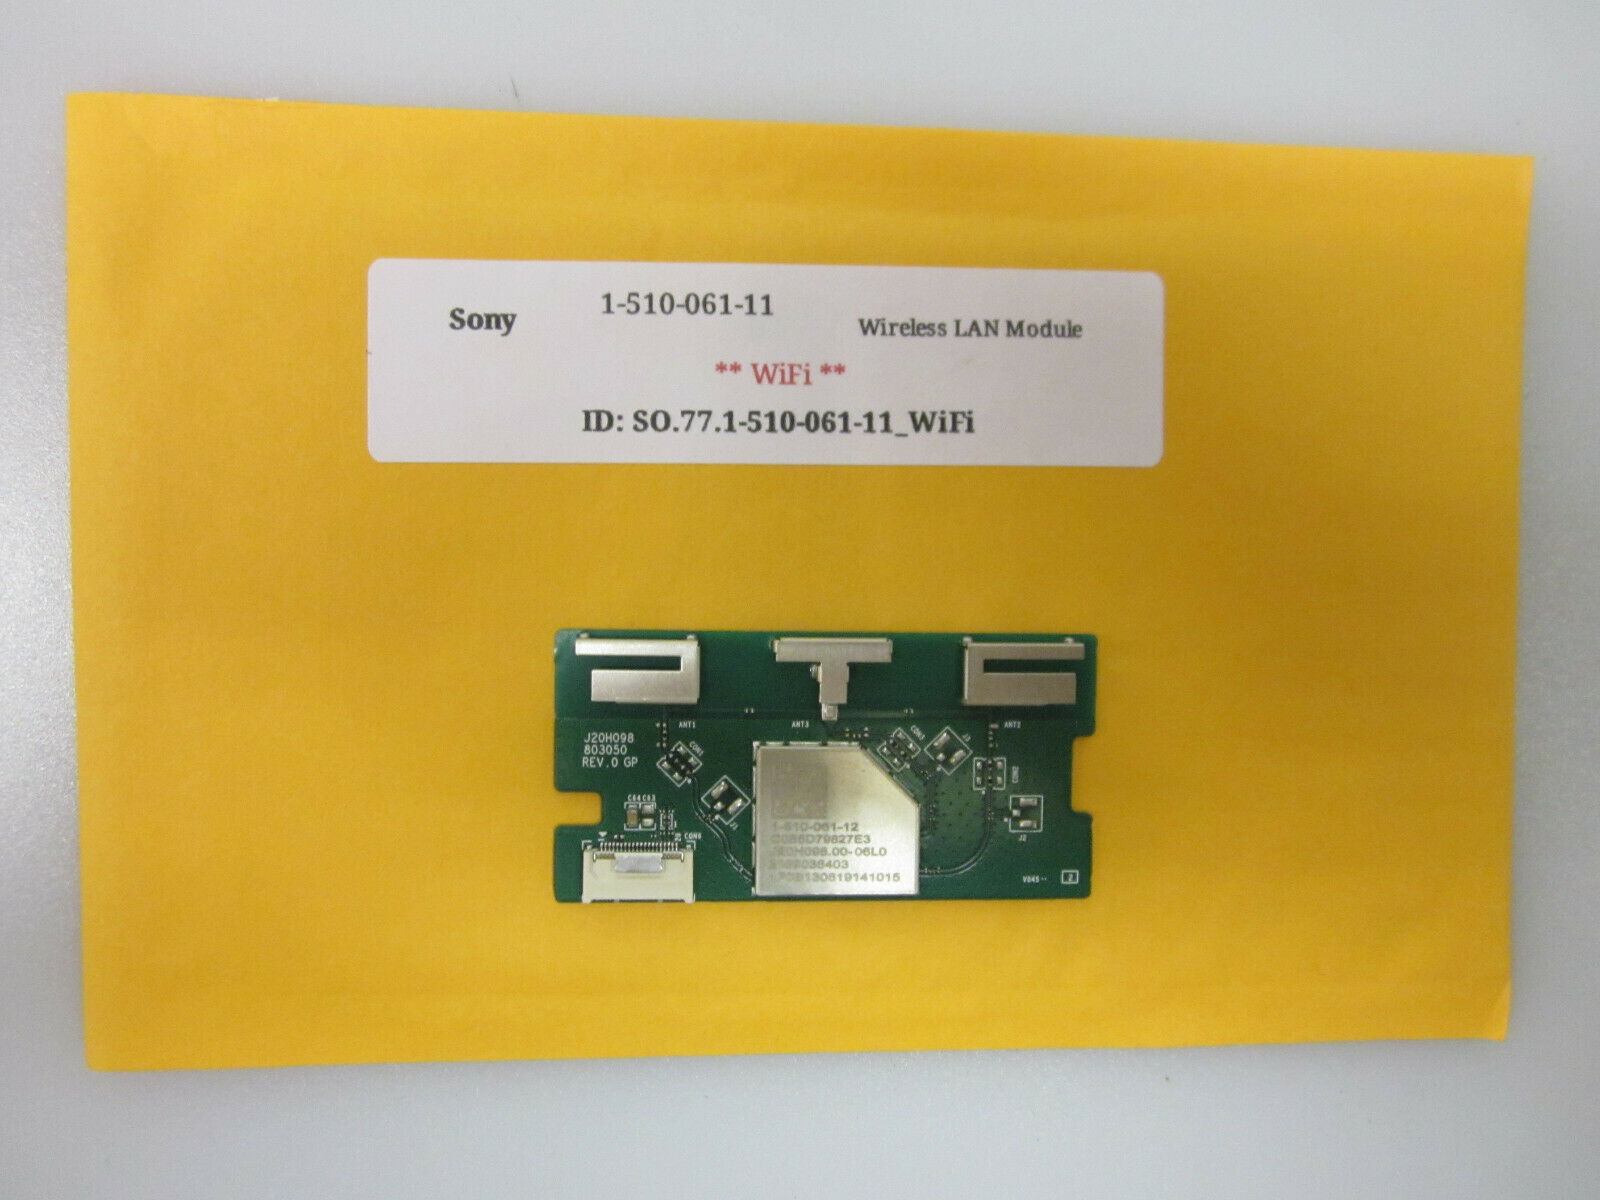 Primary image for Sony 1-510-061-11 Wireless LAN Module - Compatiable with numerous Models